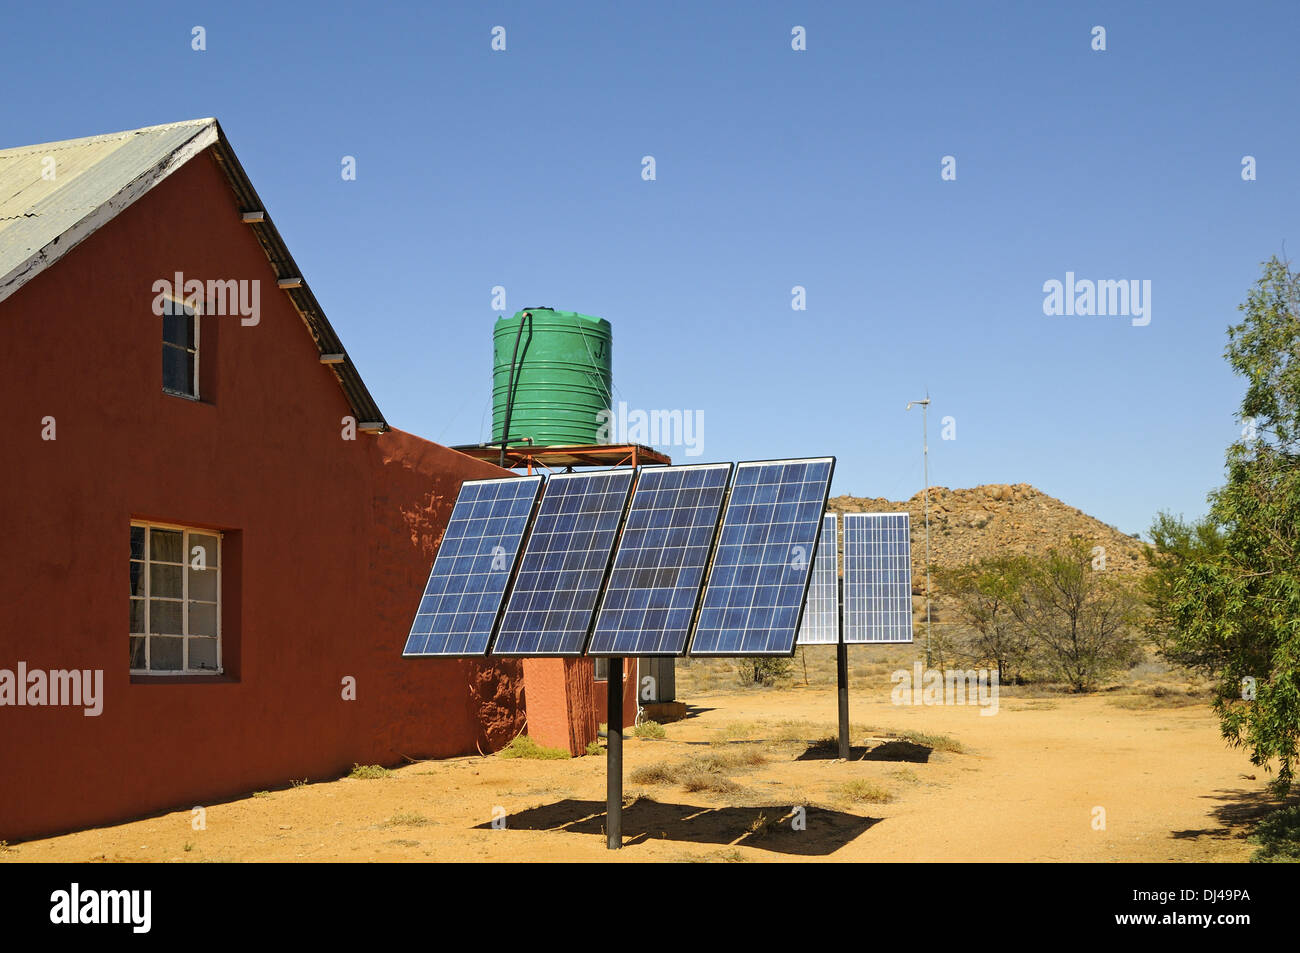 Solar panels at a farm house, South Africa - Stock Image